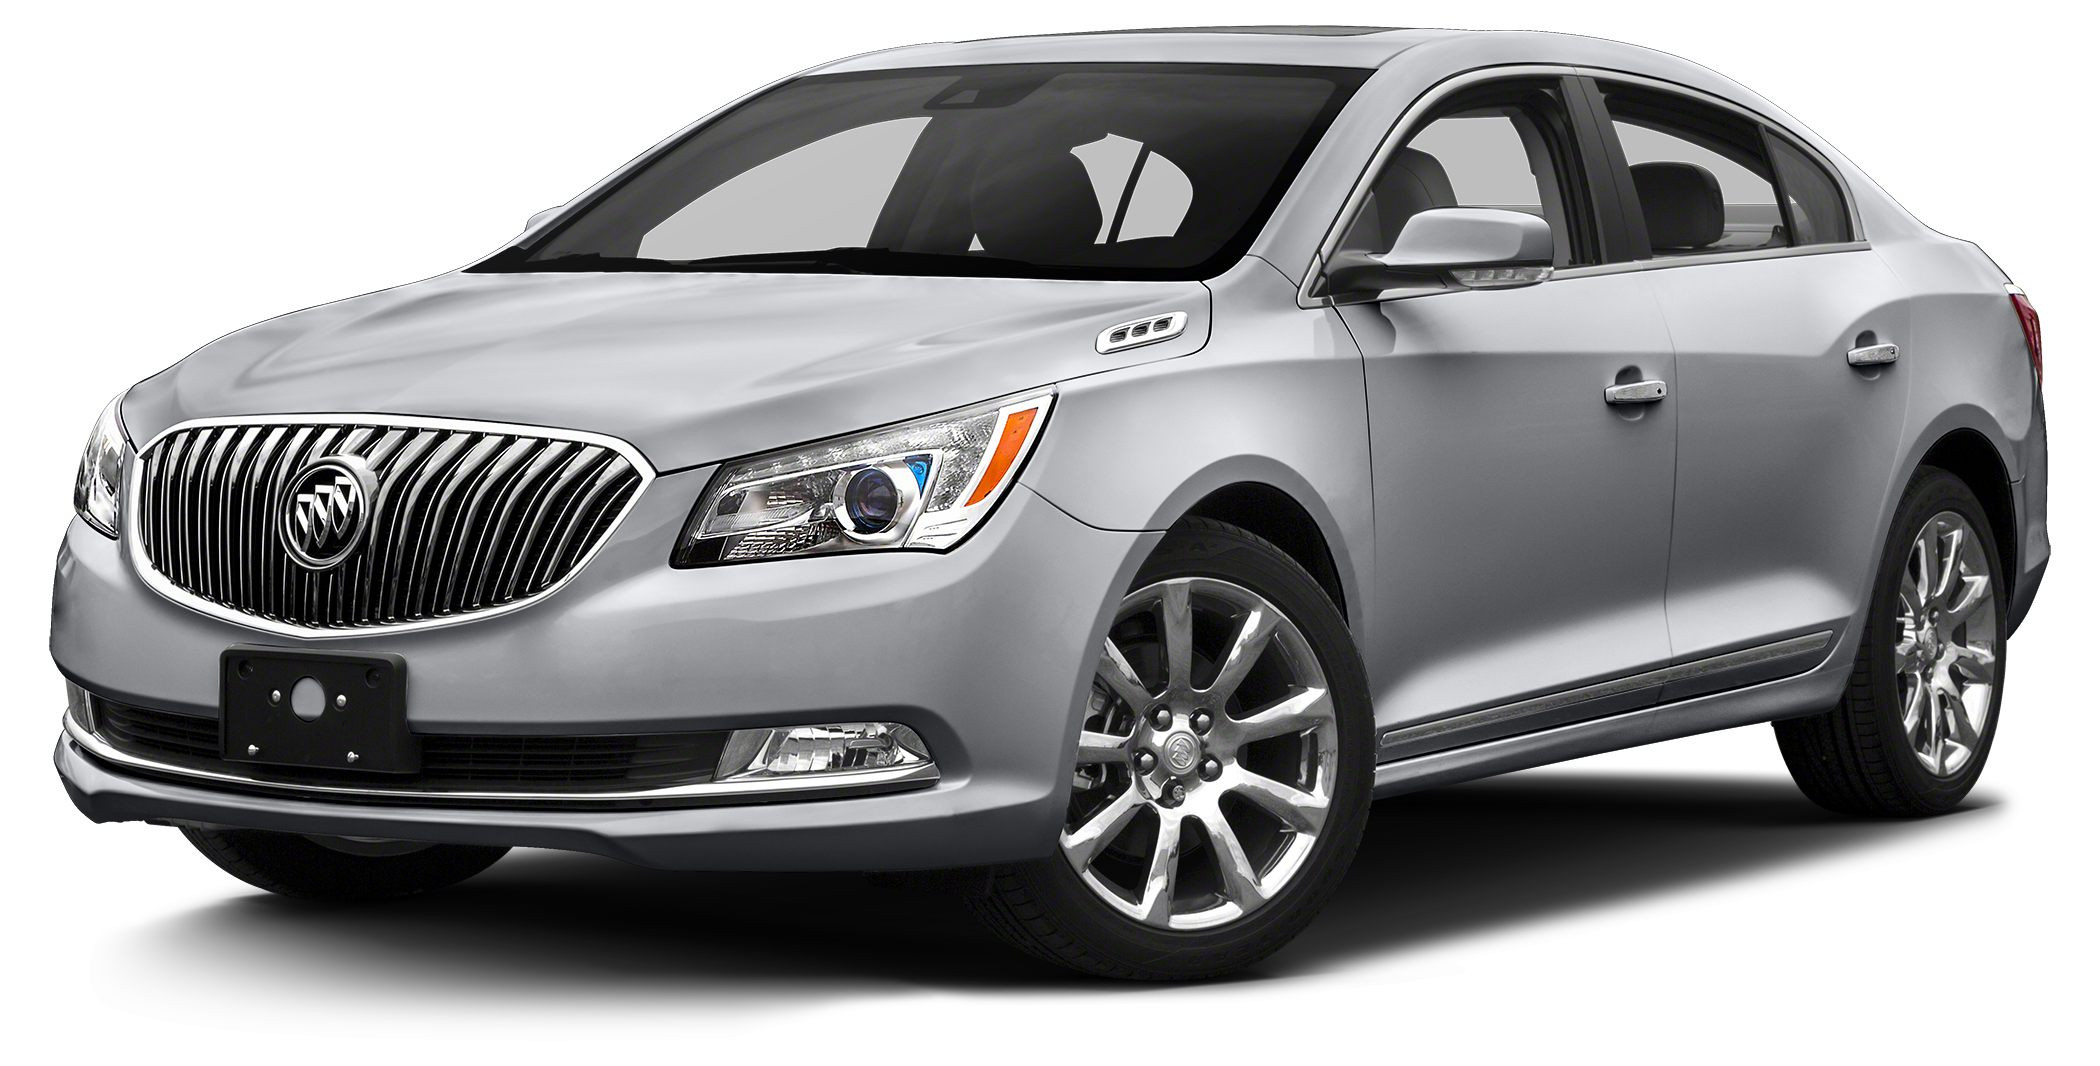 2015 Buick LaCrosse Leather Come see this 2015 Buick LaCrosse Leather Its Automatic transmission